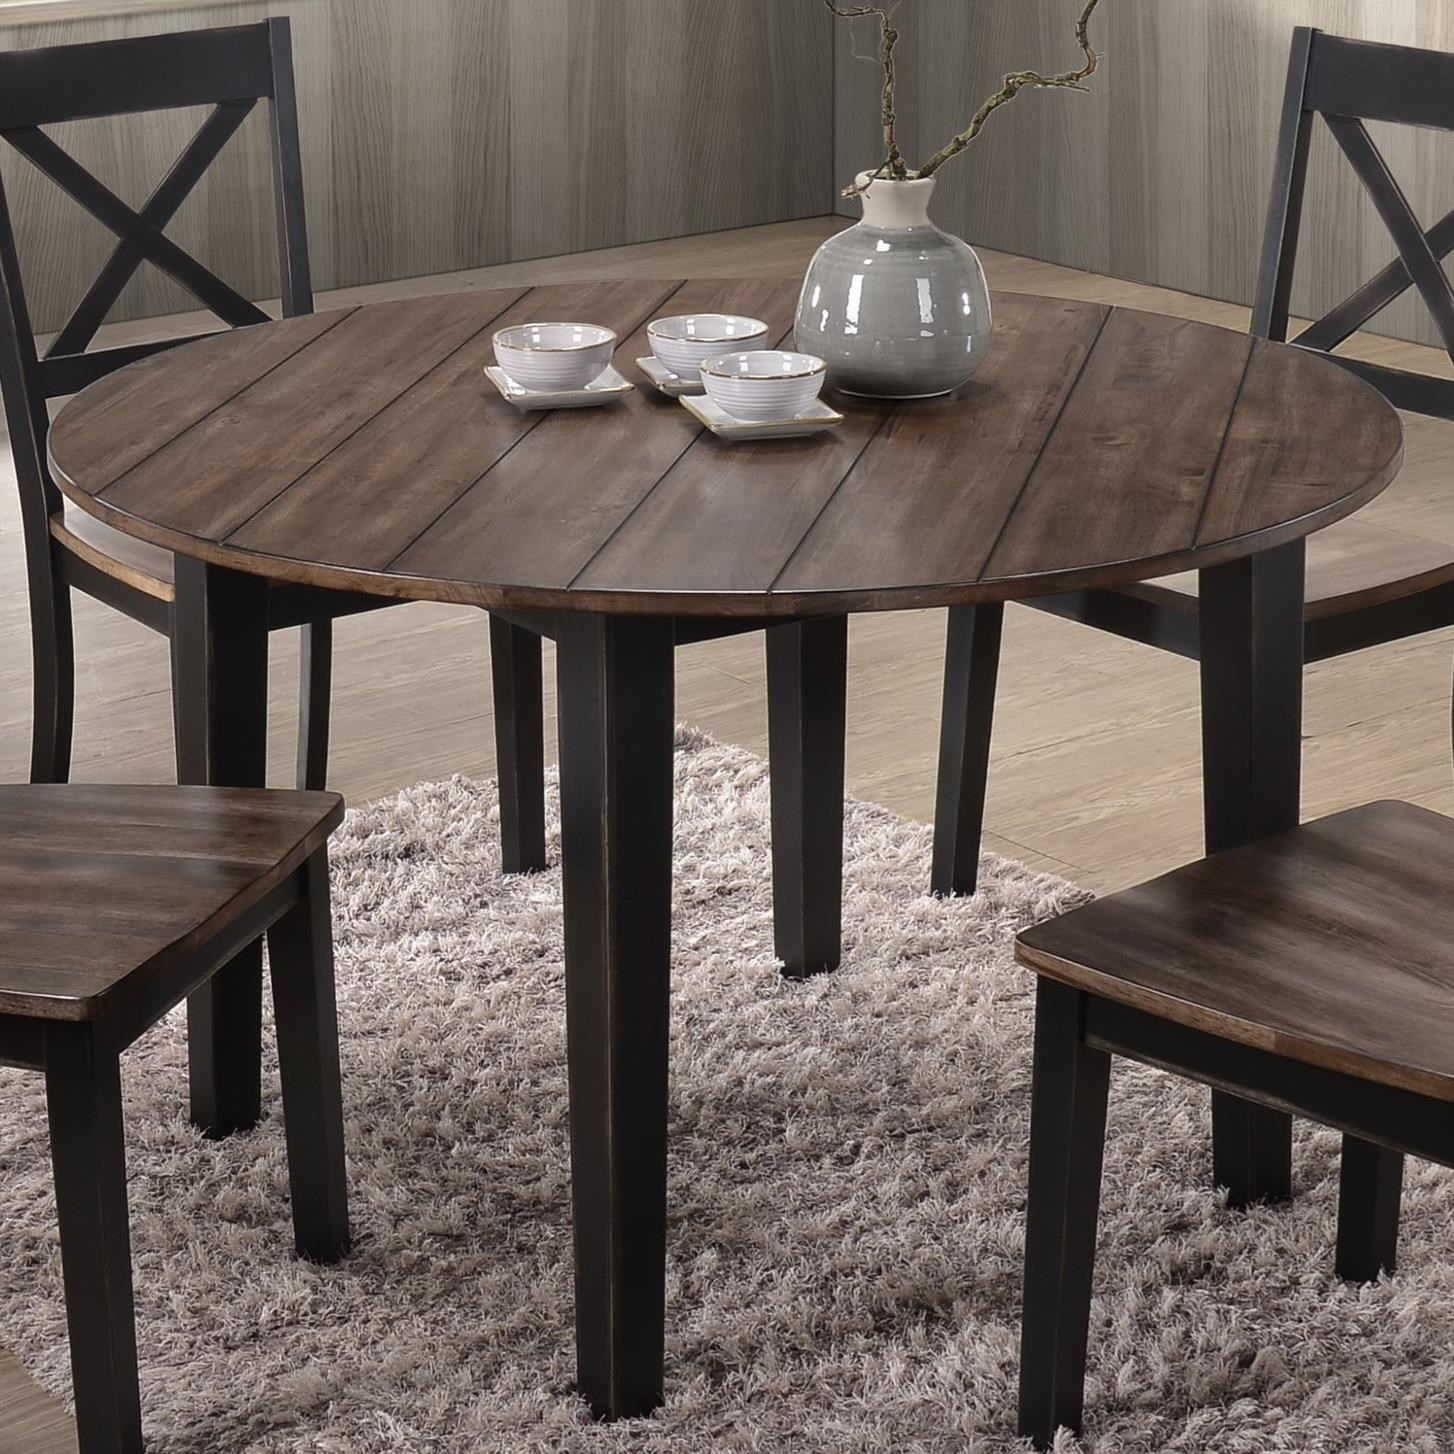 United Furniture Industries 5058 Round Dining Table - Item Number: 5058-48